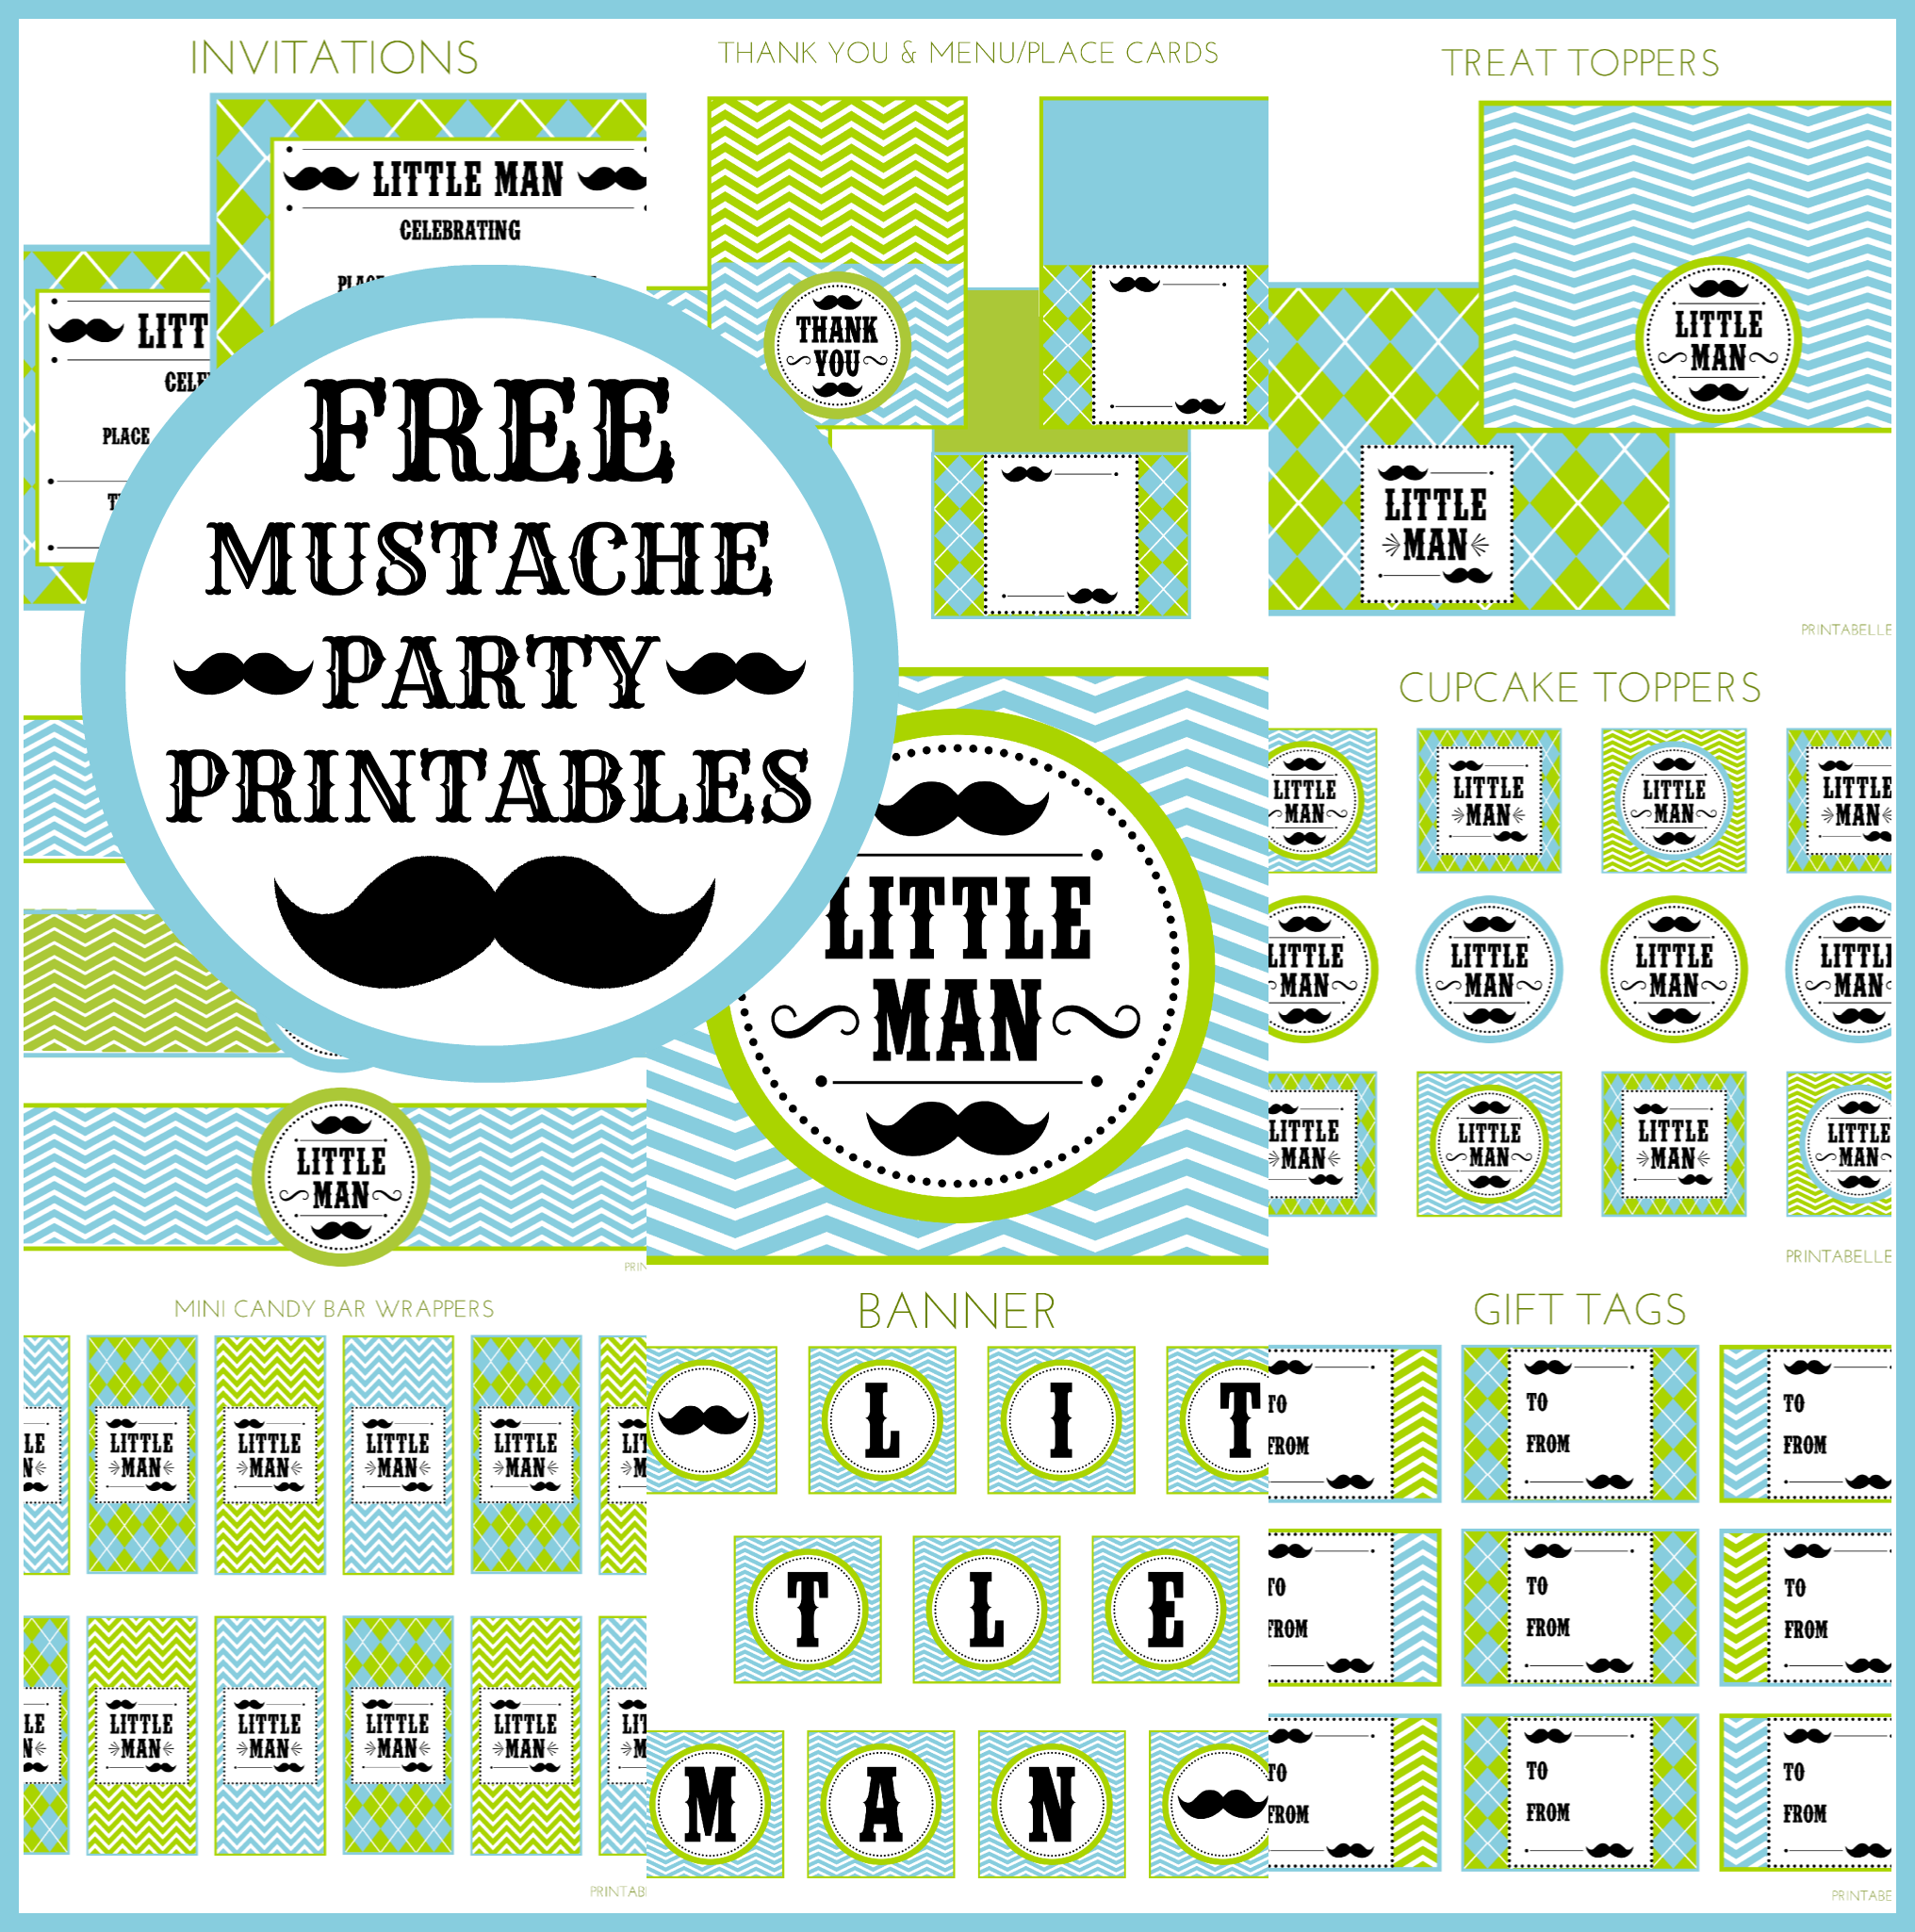 Free little man mustache bash party printables from printabelle free little man mustache bash party printables from printabelle filmwisefo Image collections